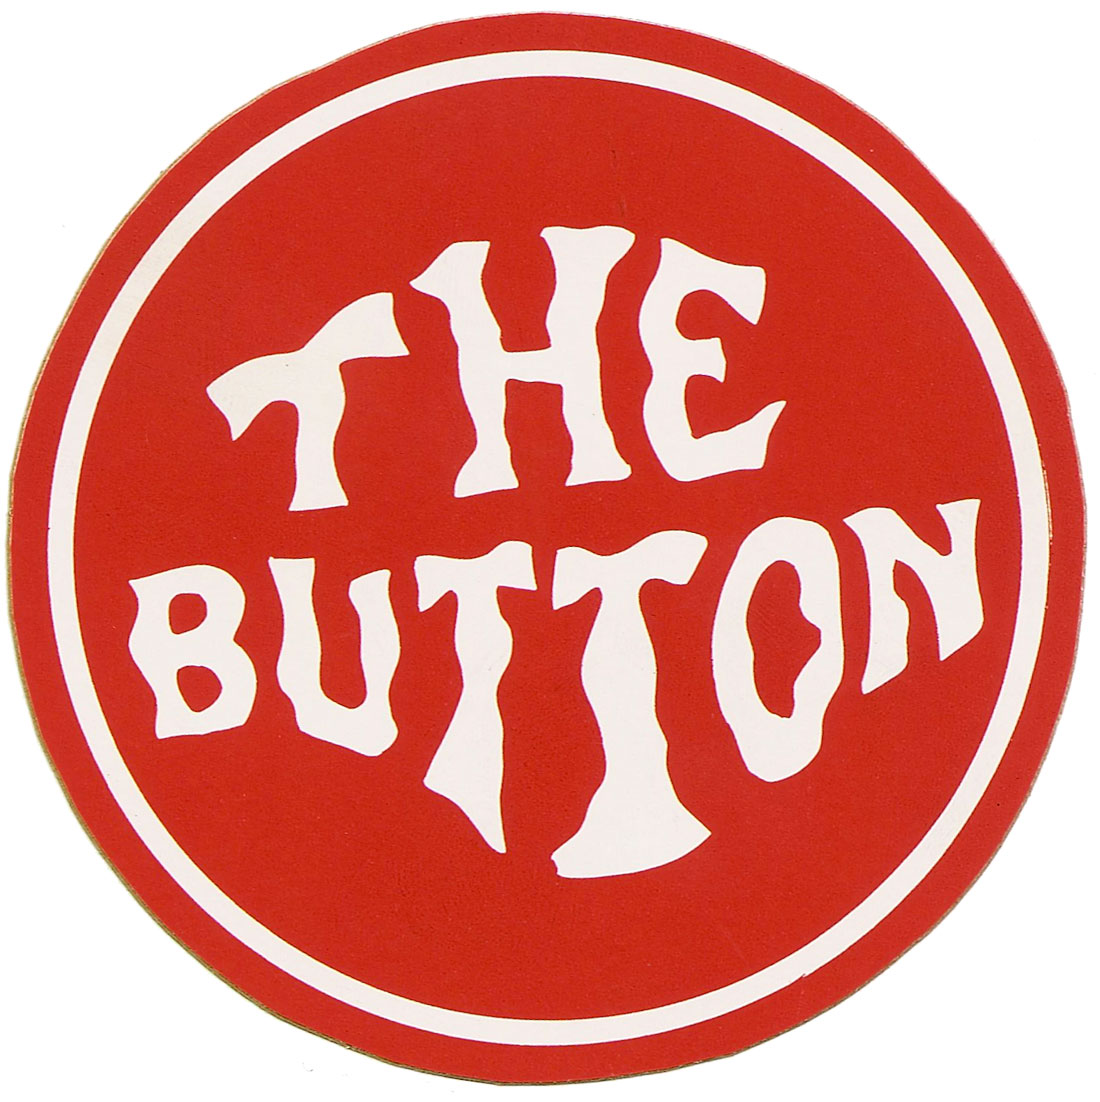 The Button sticker